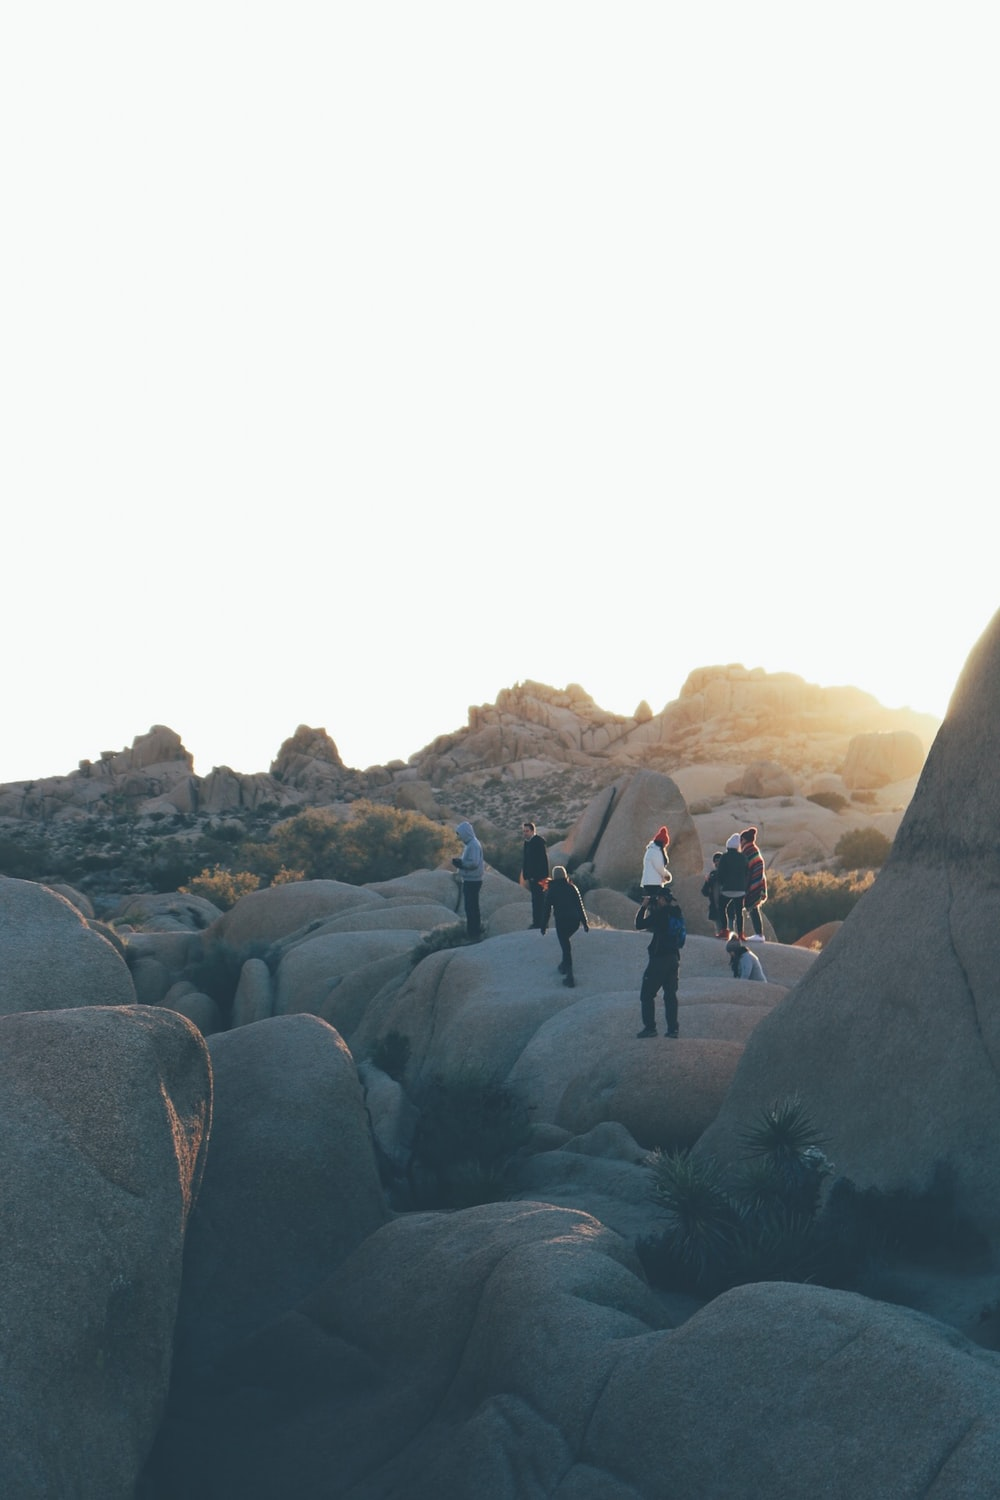 people standing on rock formations during daytime